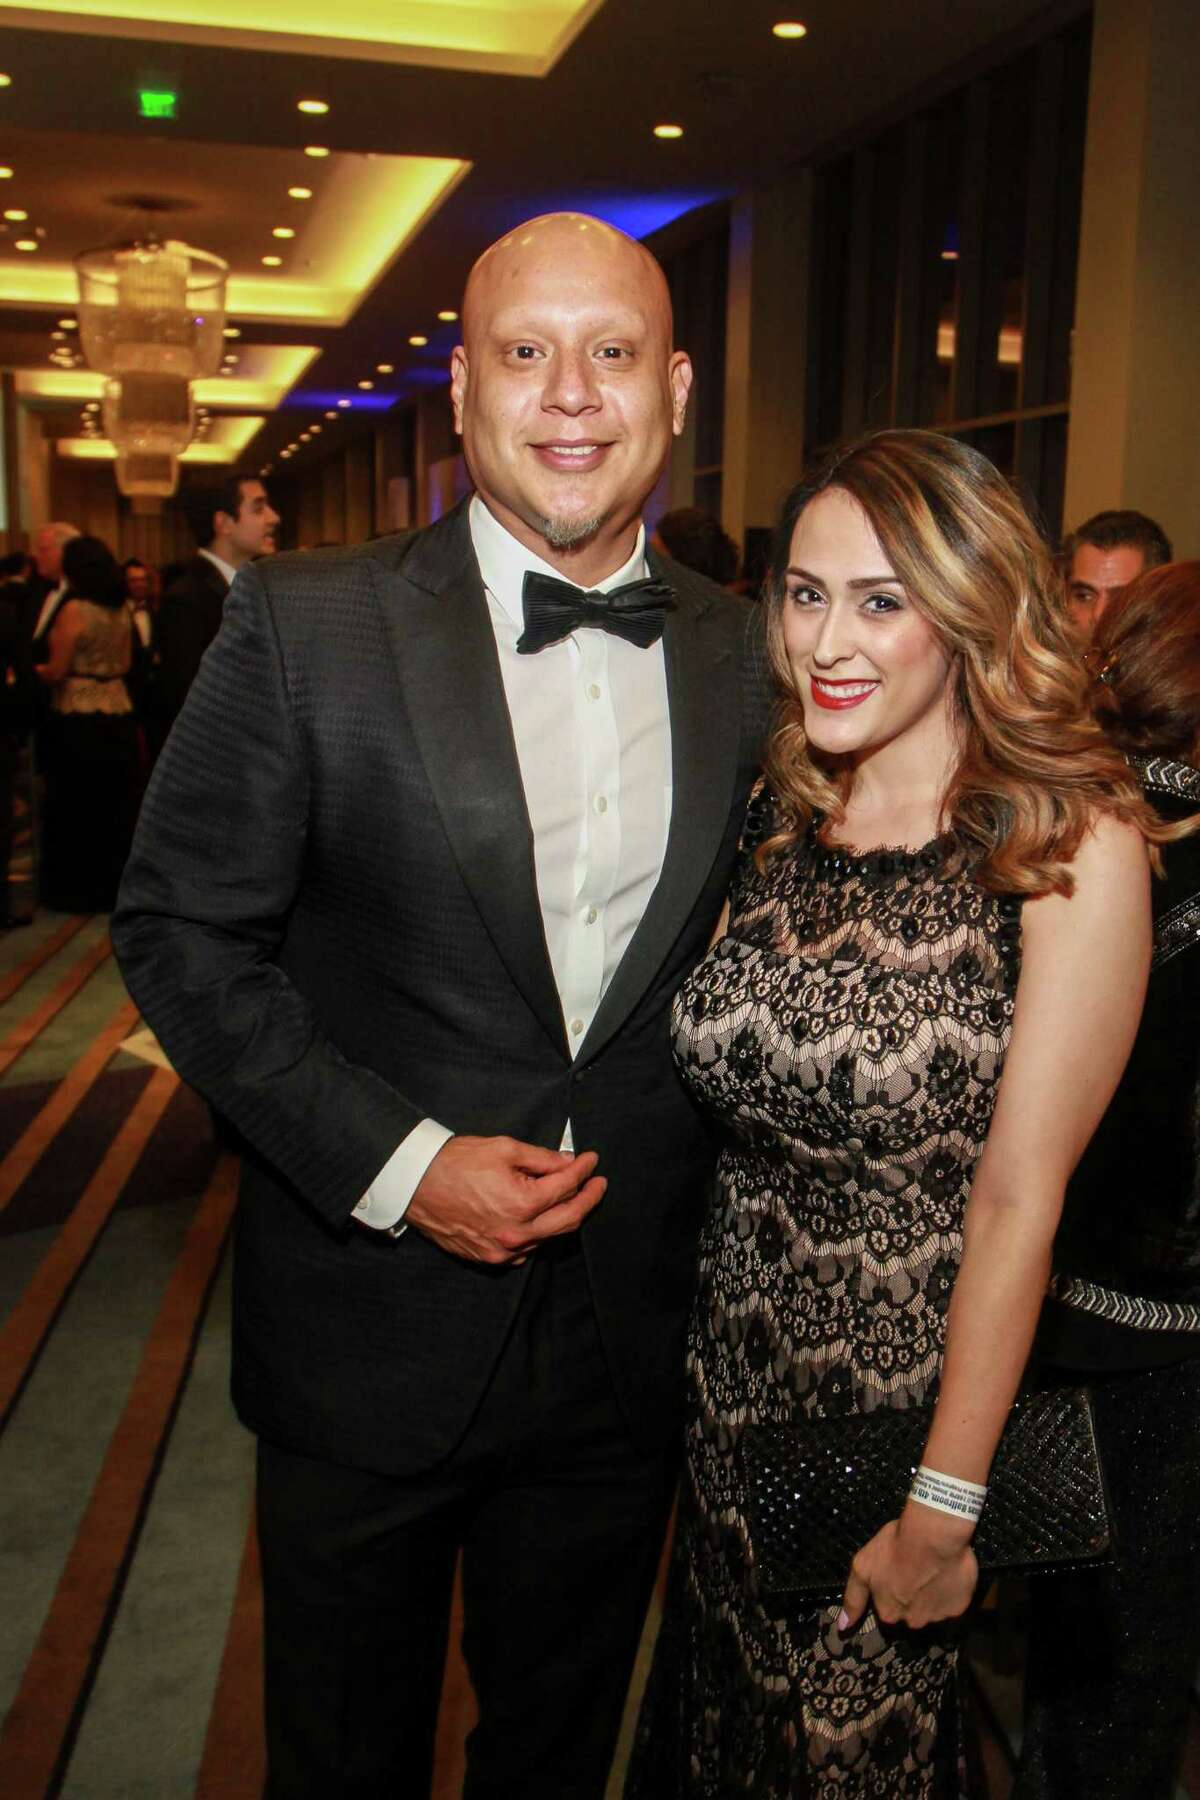 Jose F. Gonzales III, and Natalia Miralles at the Houston Hispanic Chamber of Commerce annual awards and gala.